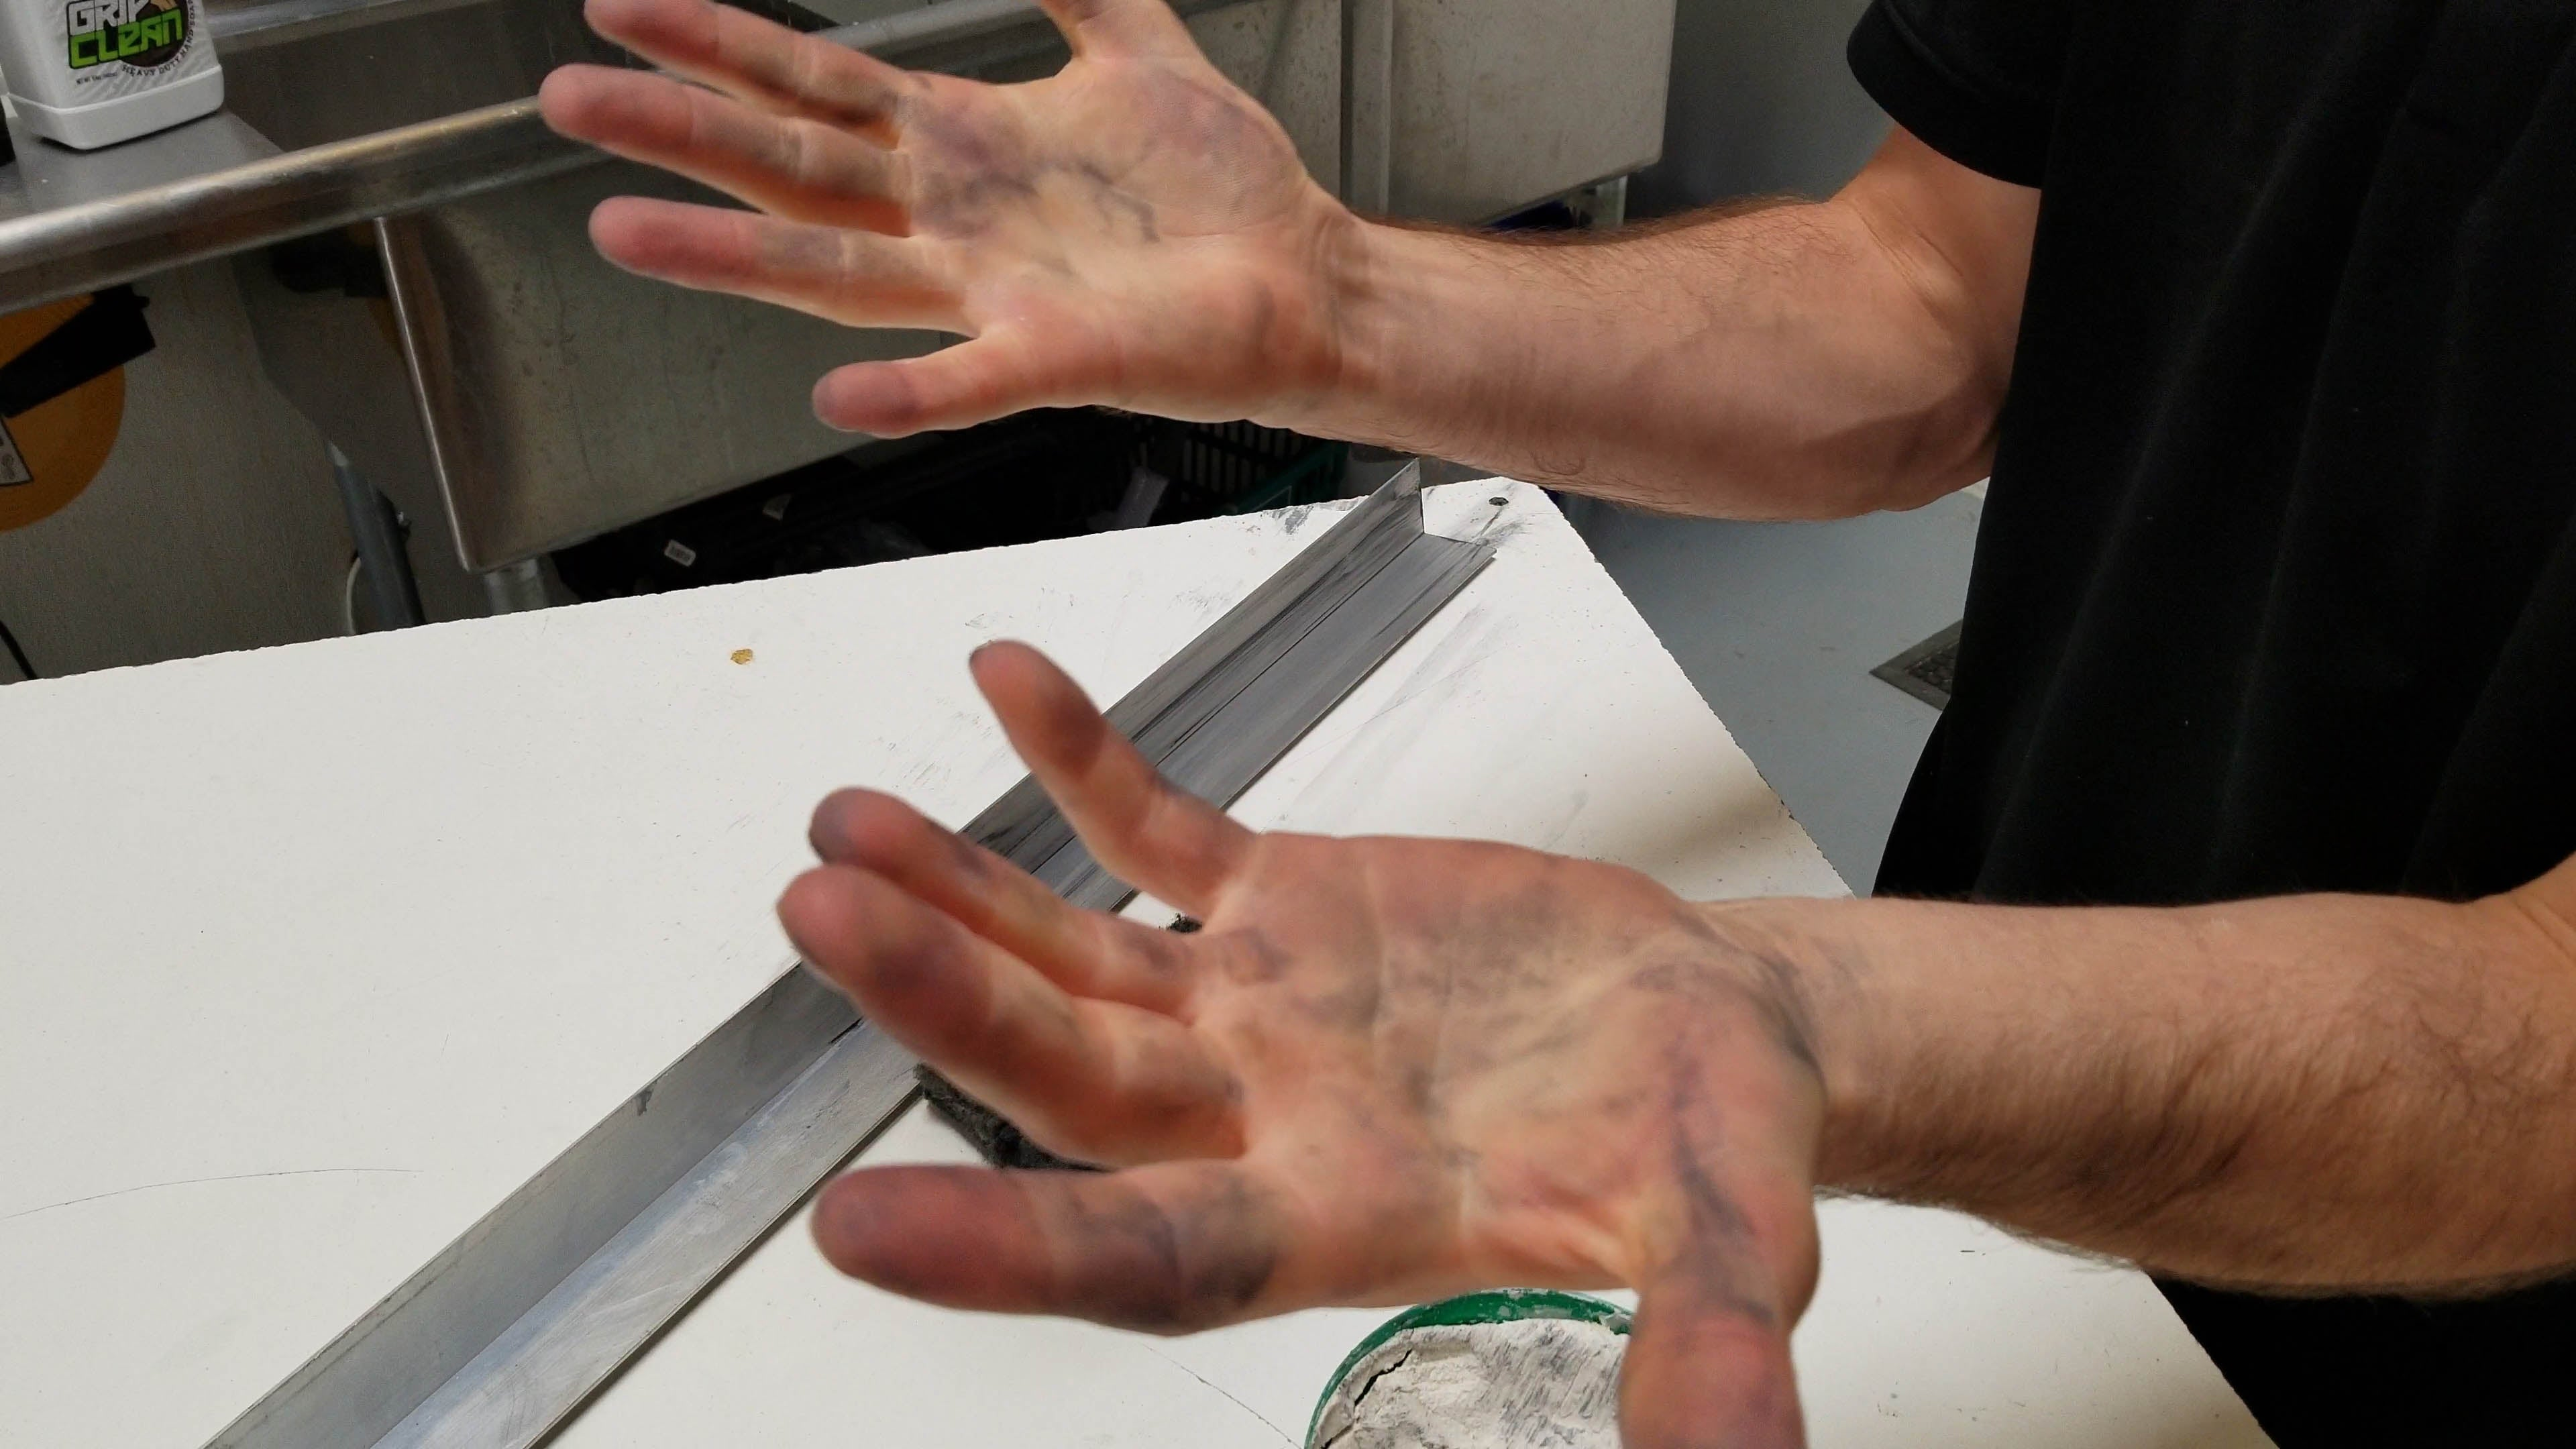 How to remove metal cleaner polish from your hands